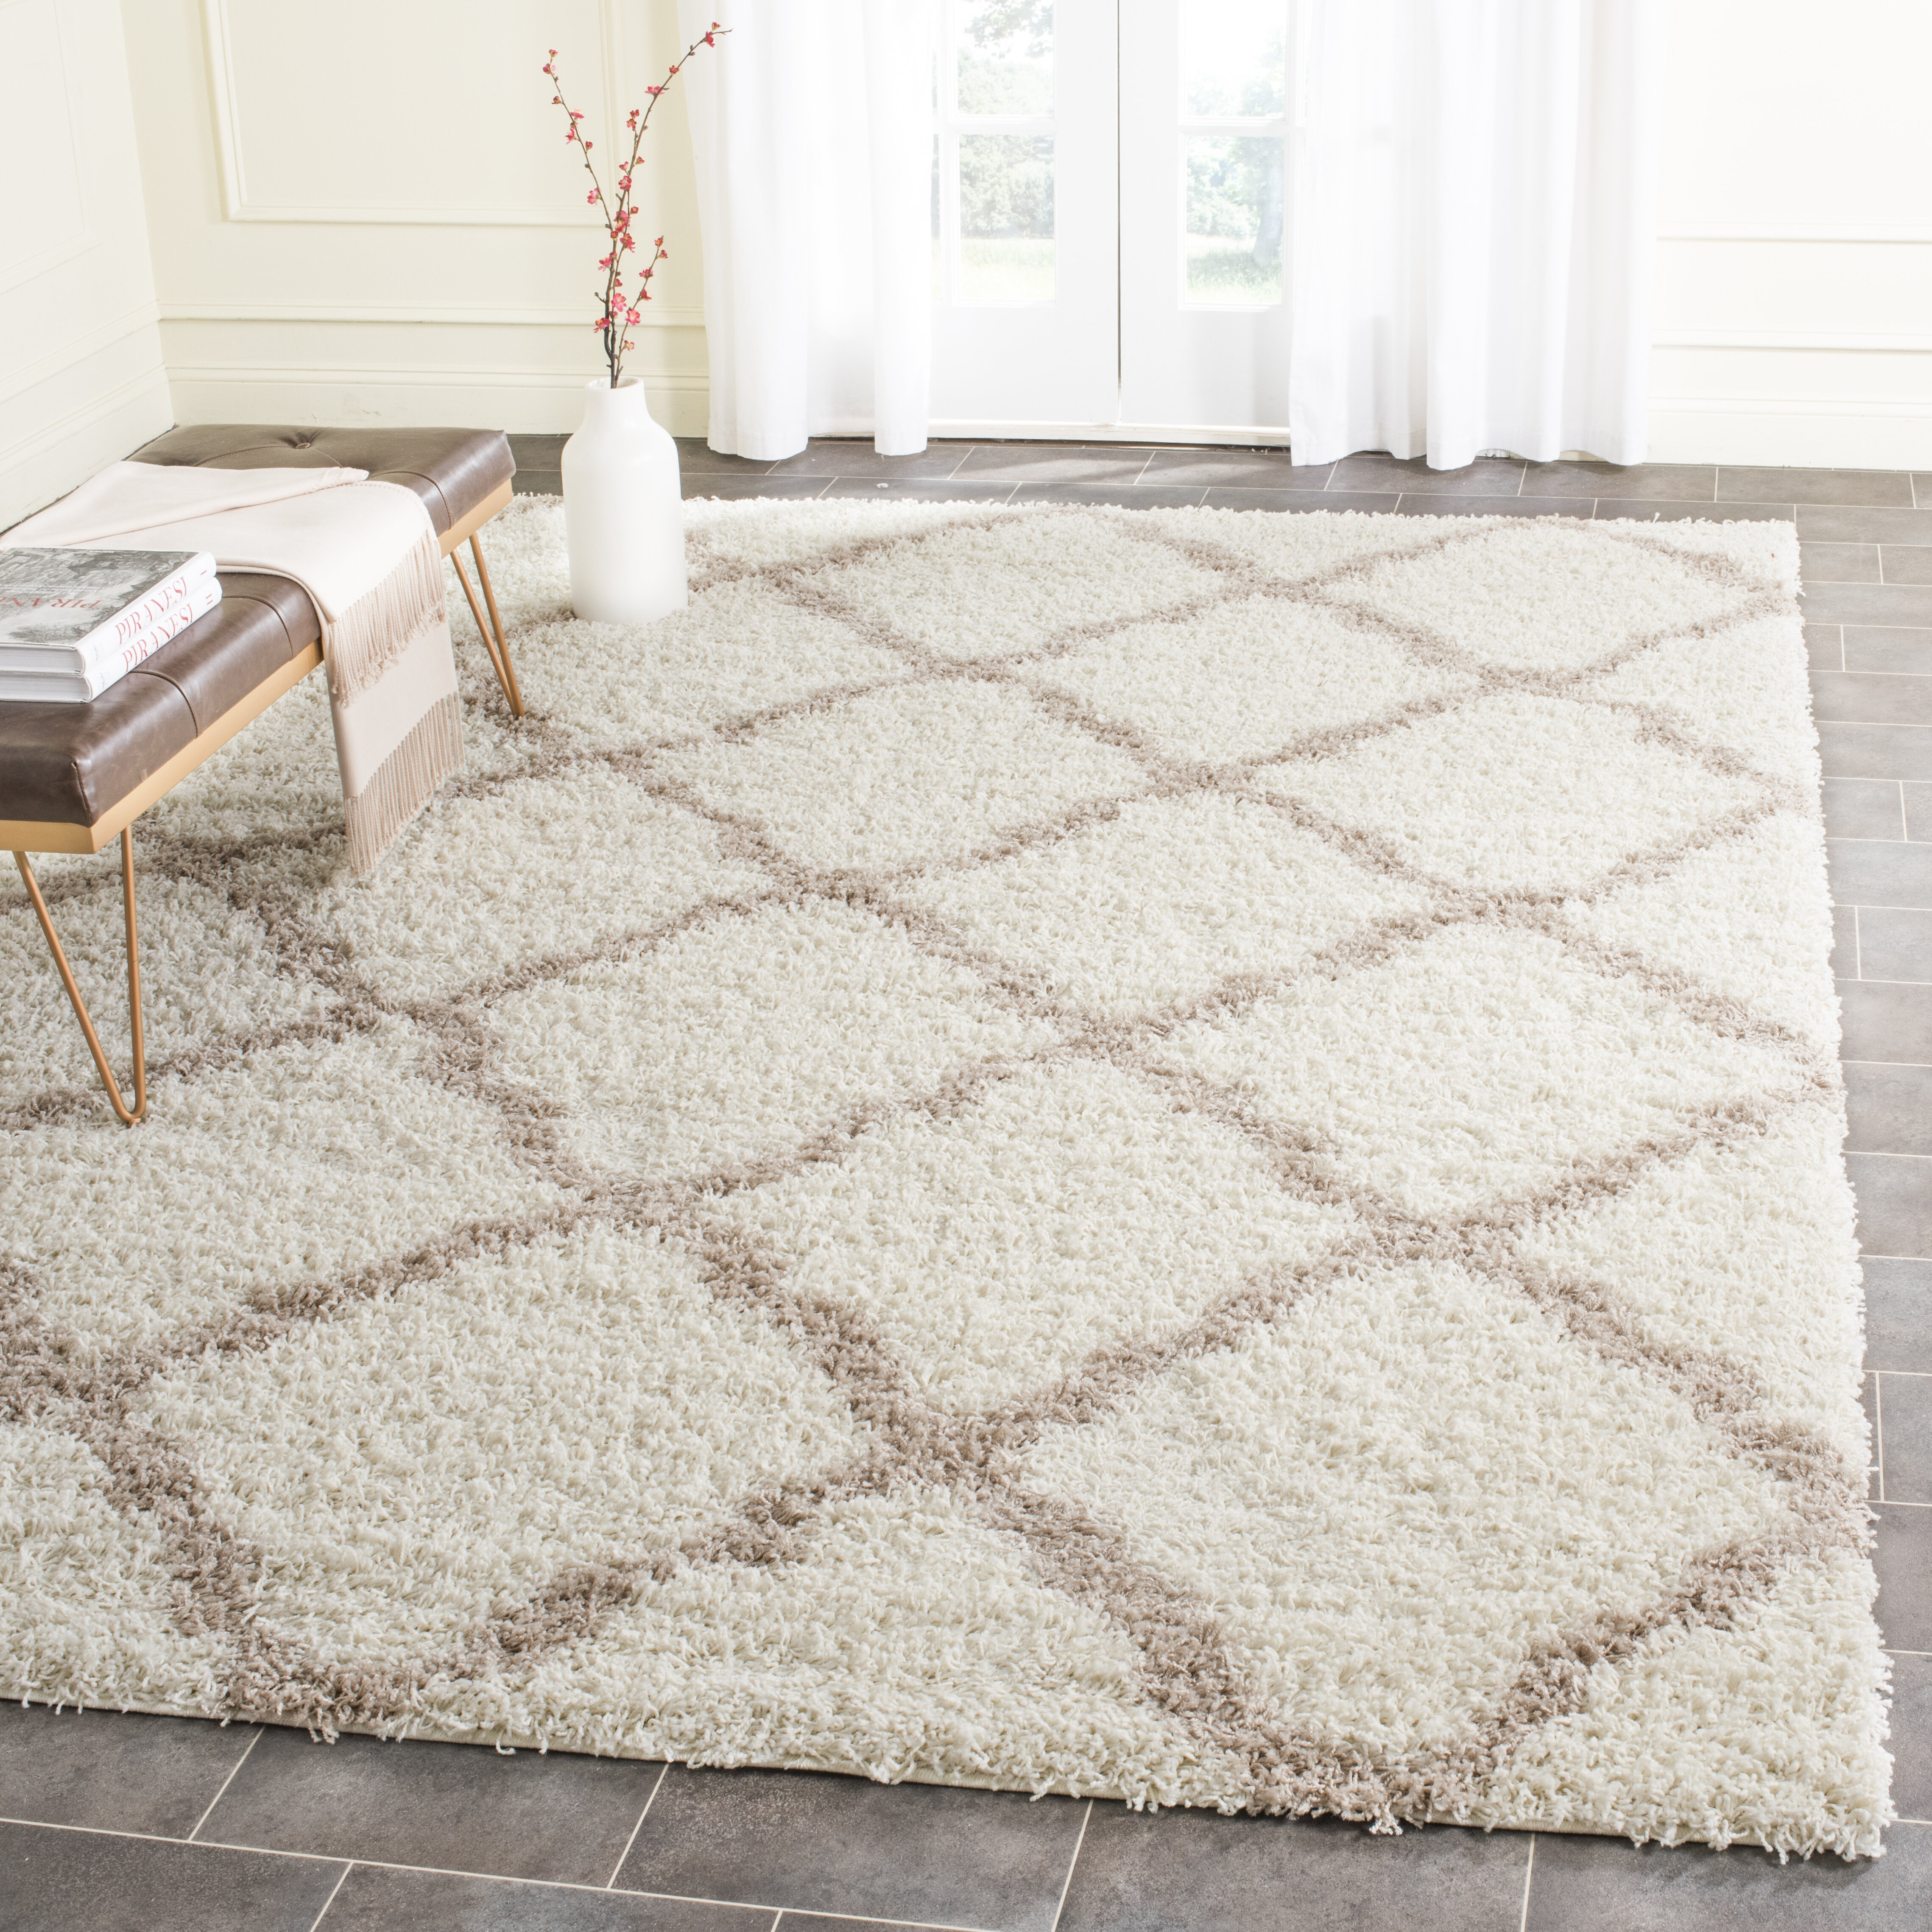 floor shag runner white your for captivating diamond safavieh grey rug decoration decor curtains interior rugs ivory charming and entryway